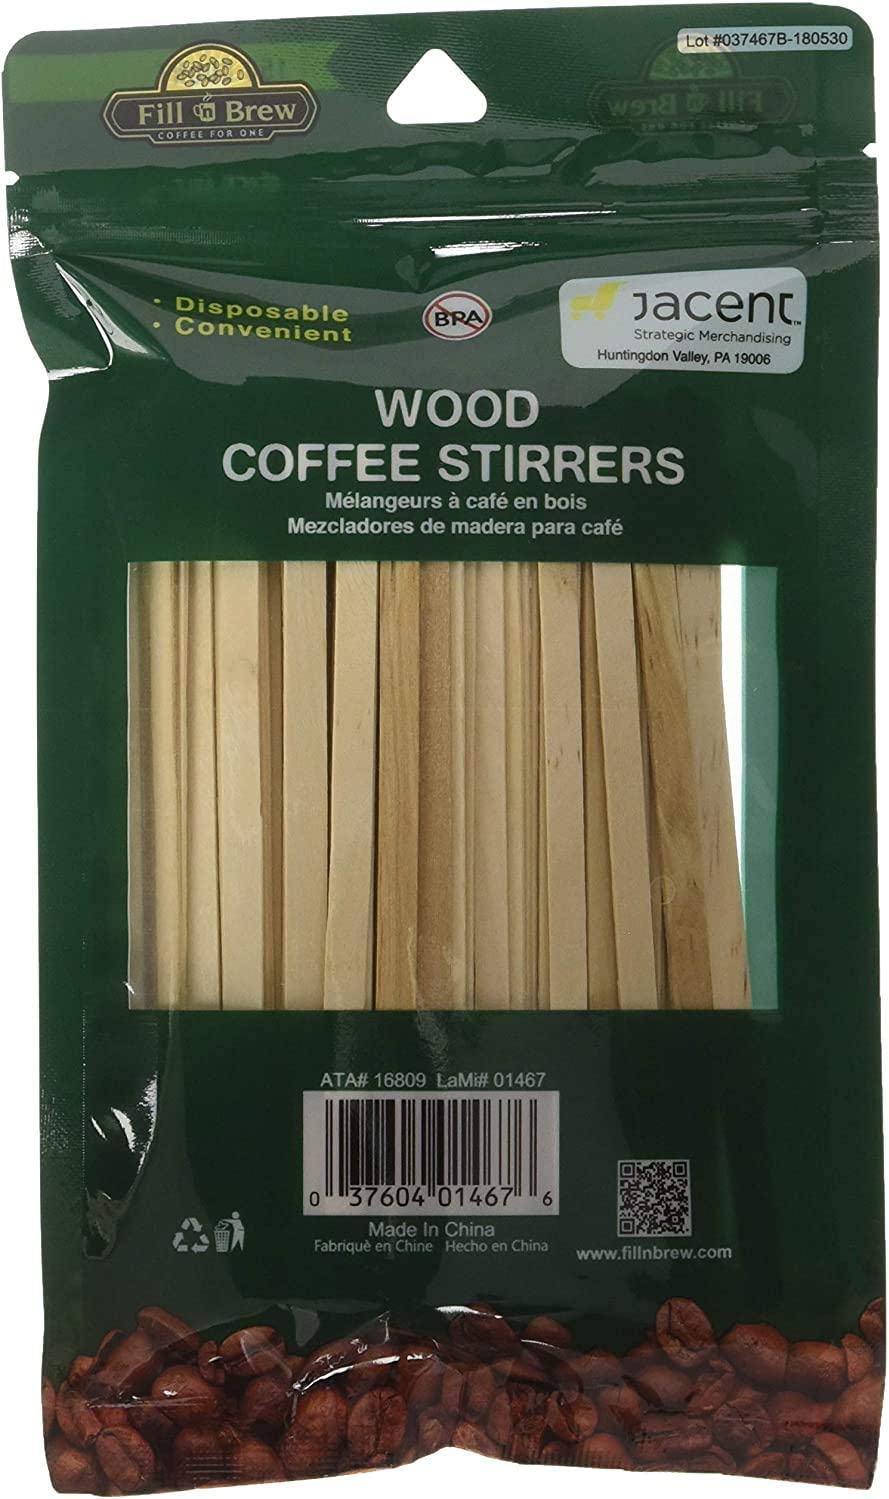 150 count, resealable package Fill n Brew Wood Coffee Stirrers 2 pack